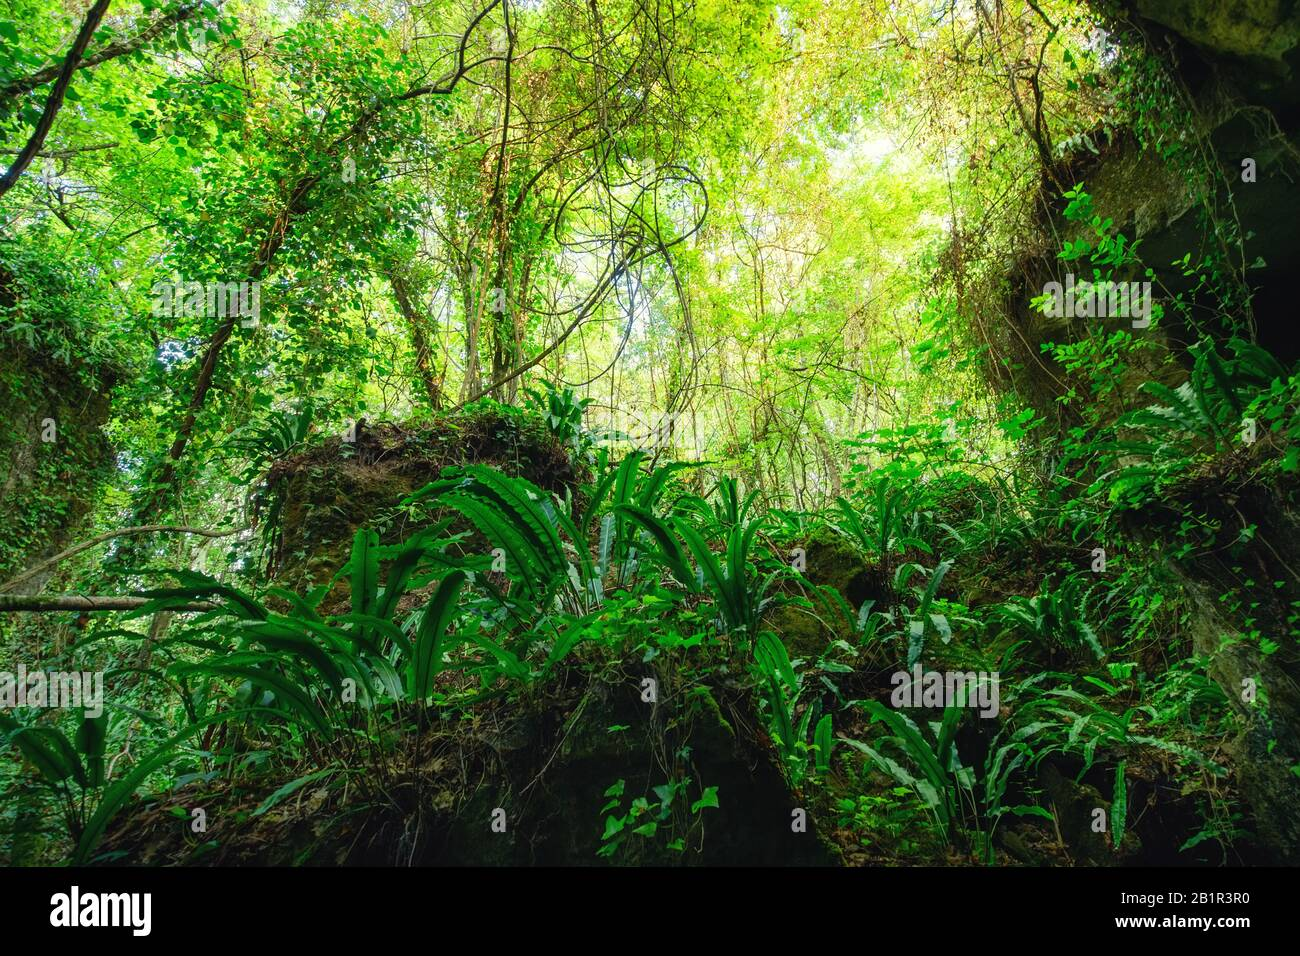 Wild lush forest with hart's tongue ferns growing on rocks in the Gironde department in France, near Bordeaux. Stock Photo